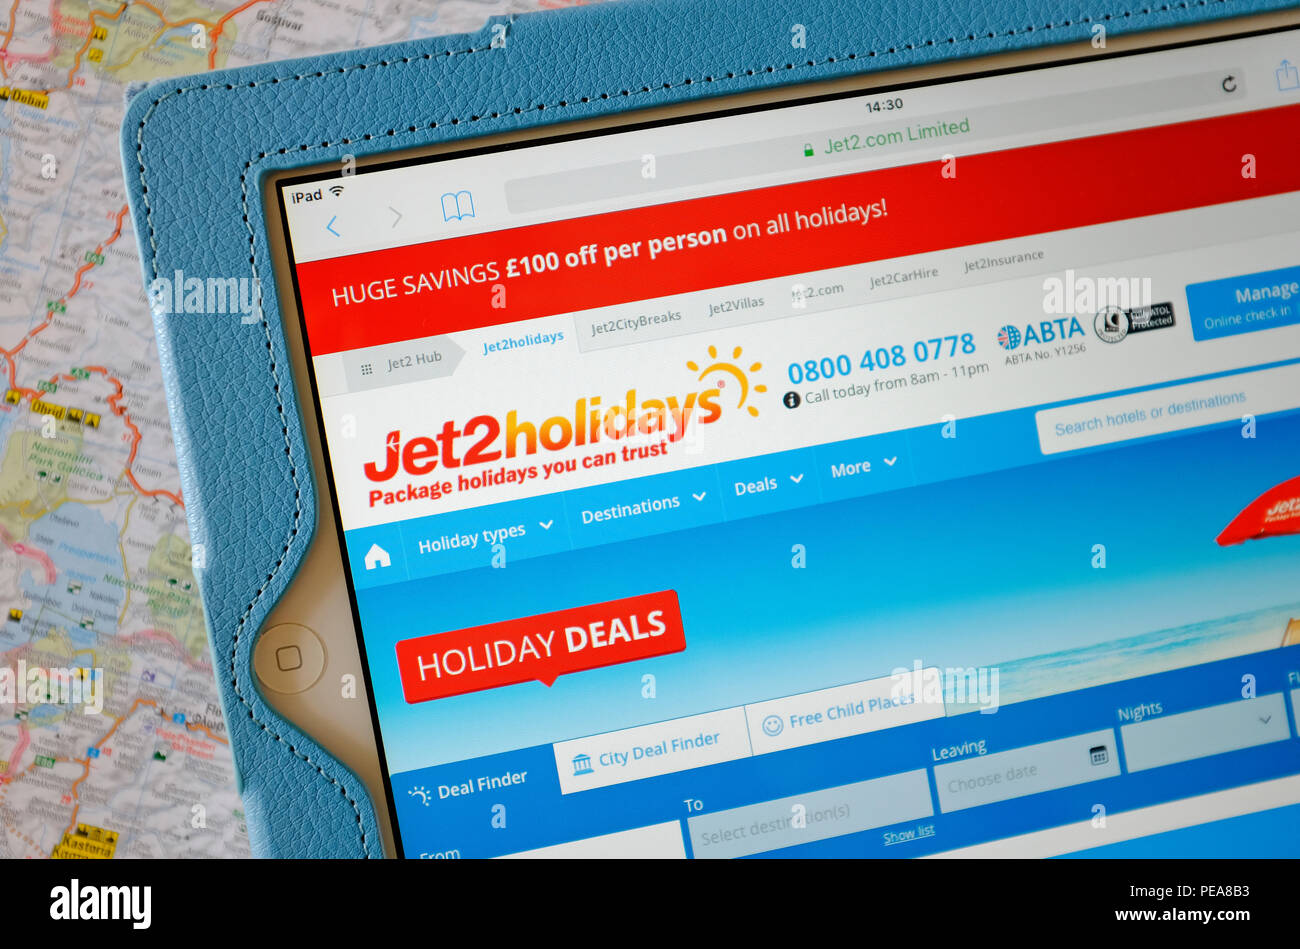 jet 2 holidays website homepage on tablet computer screen - Stock Image